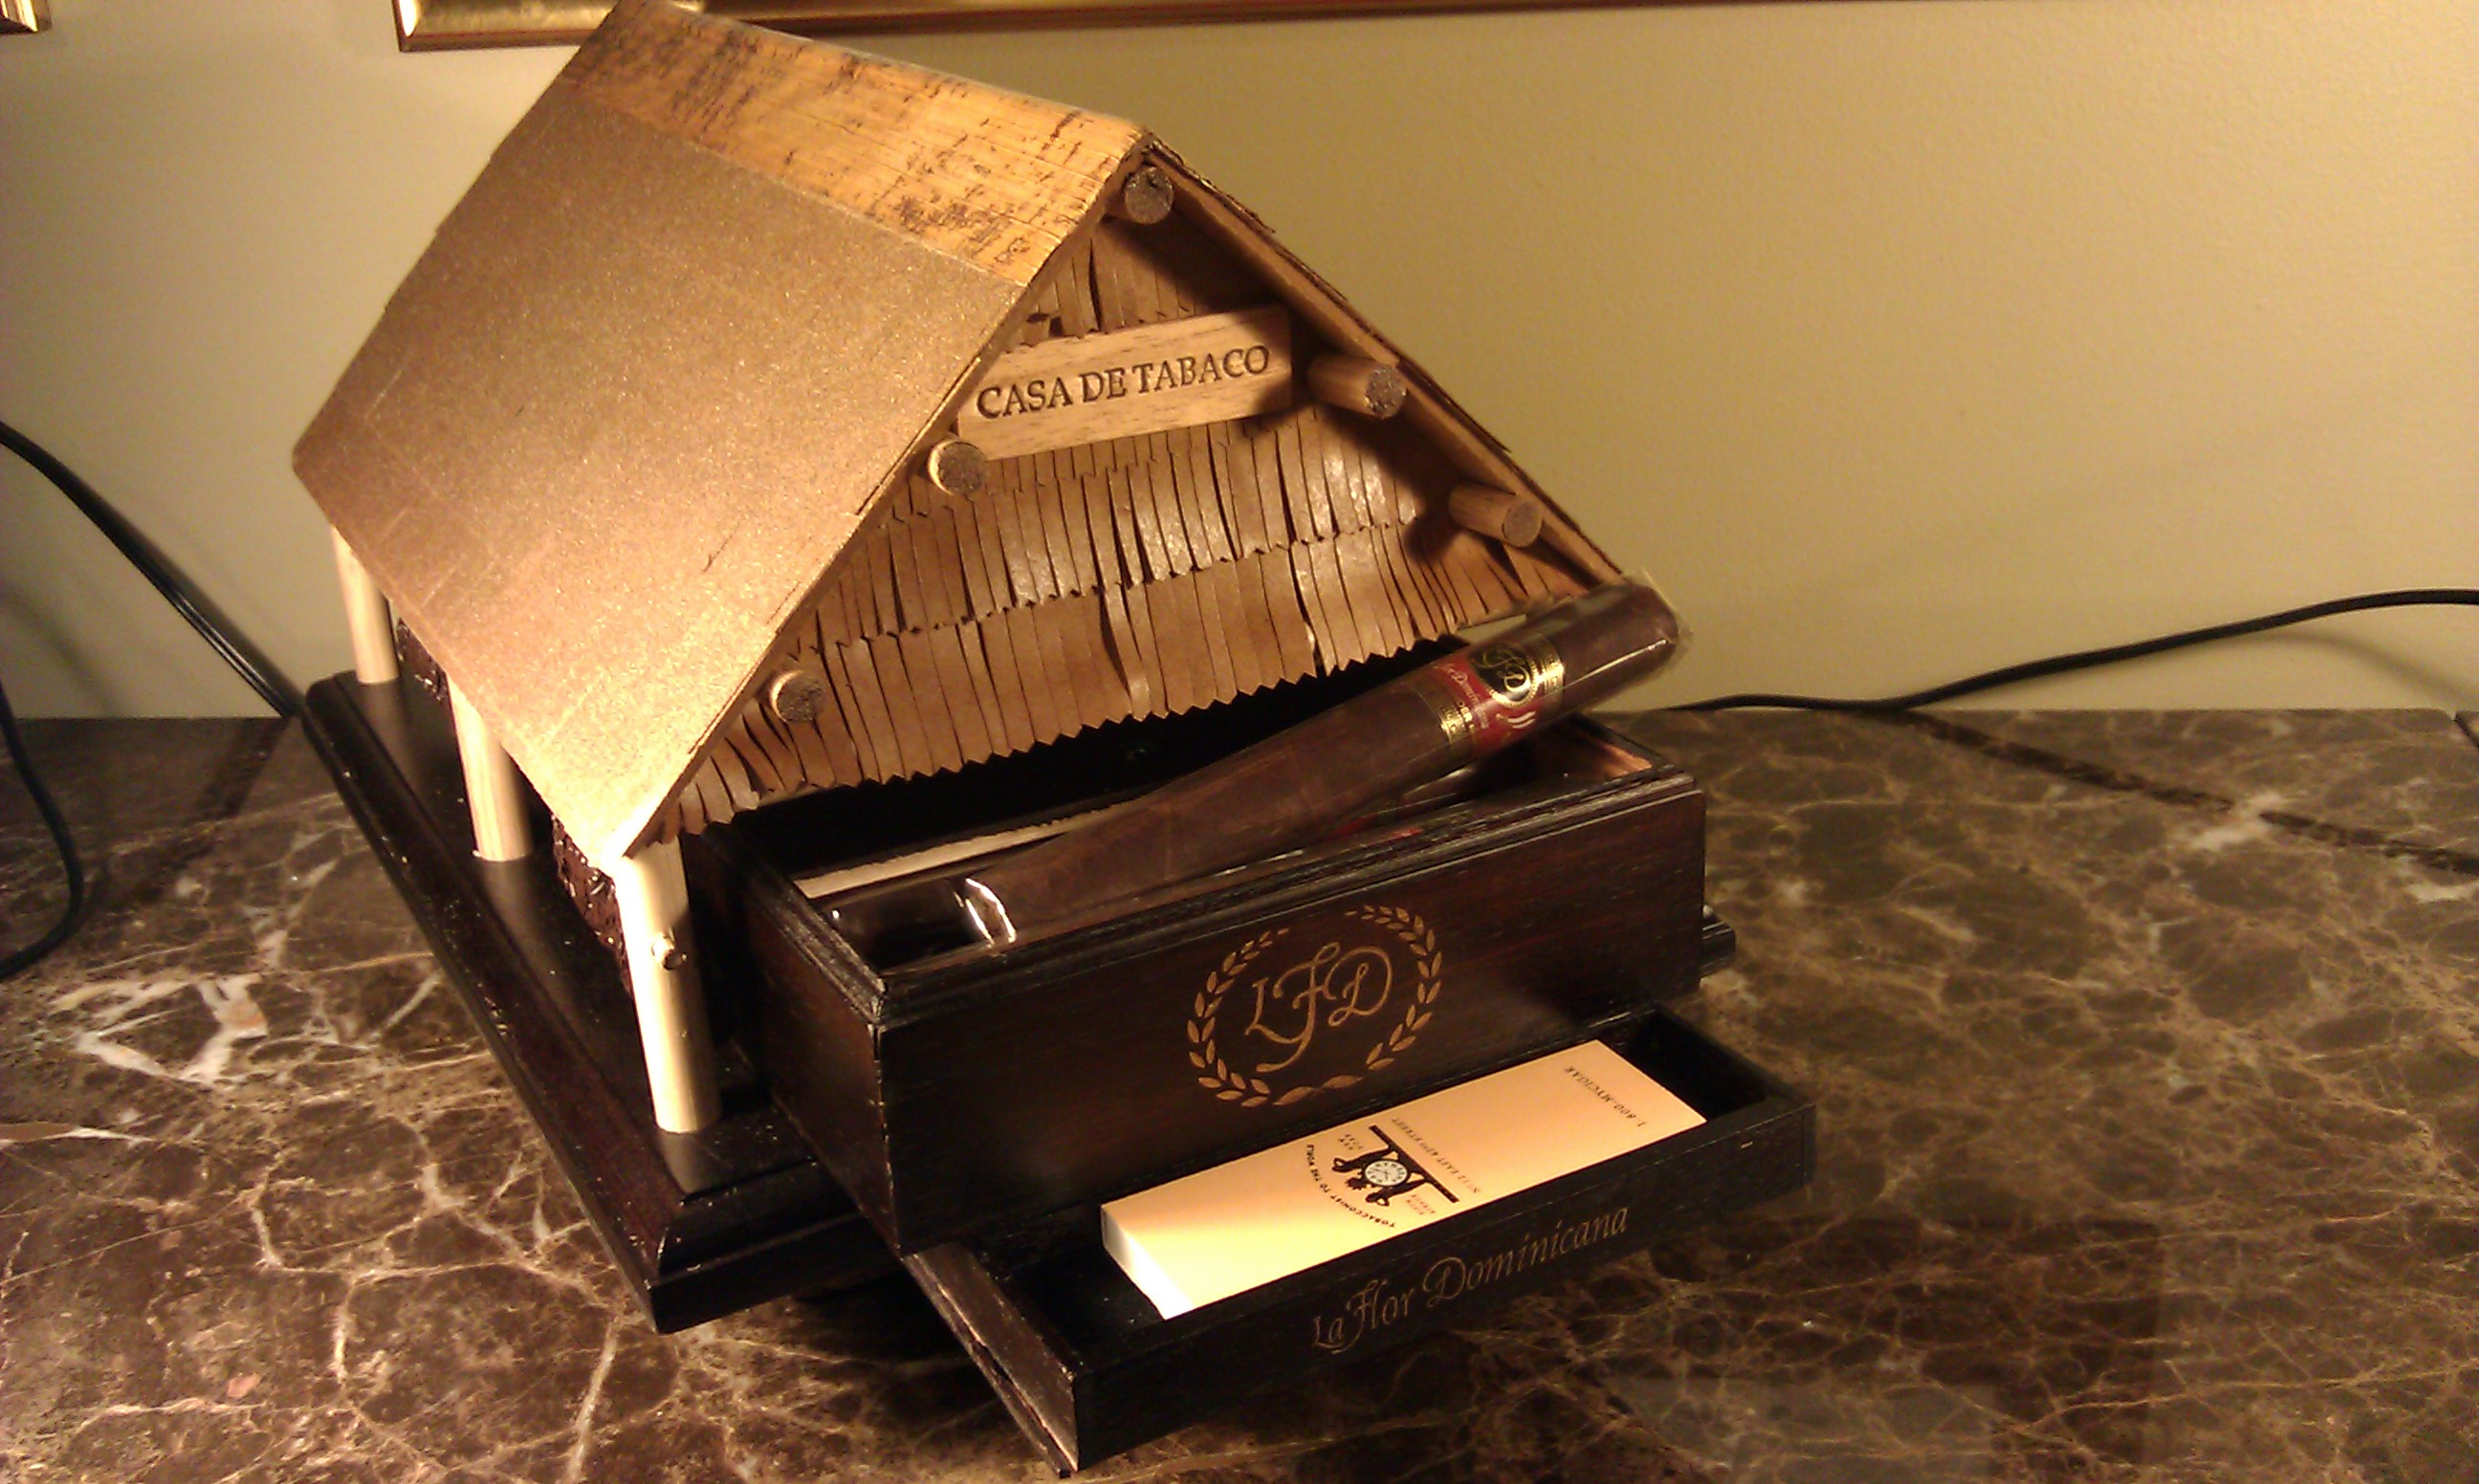 Nat Sherman Hosts Litto Gomez to Launch Casa de Tobacco